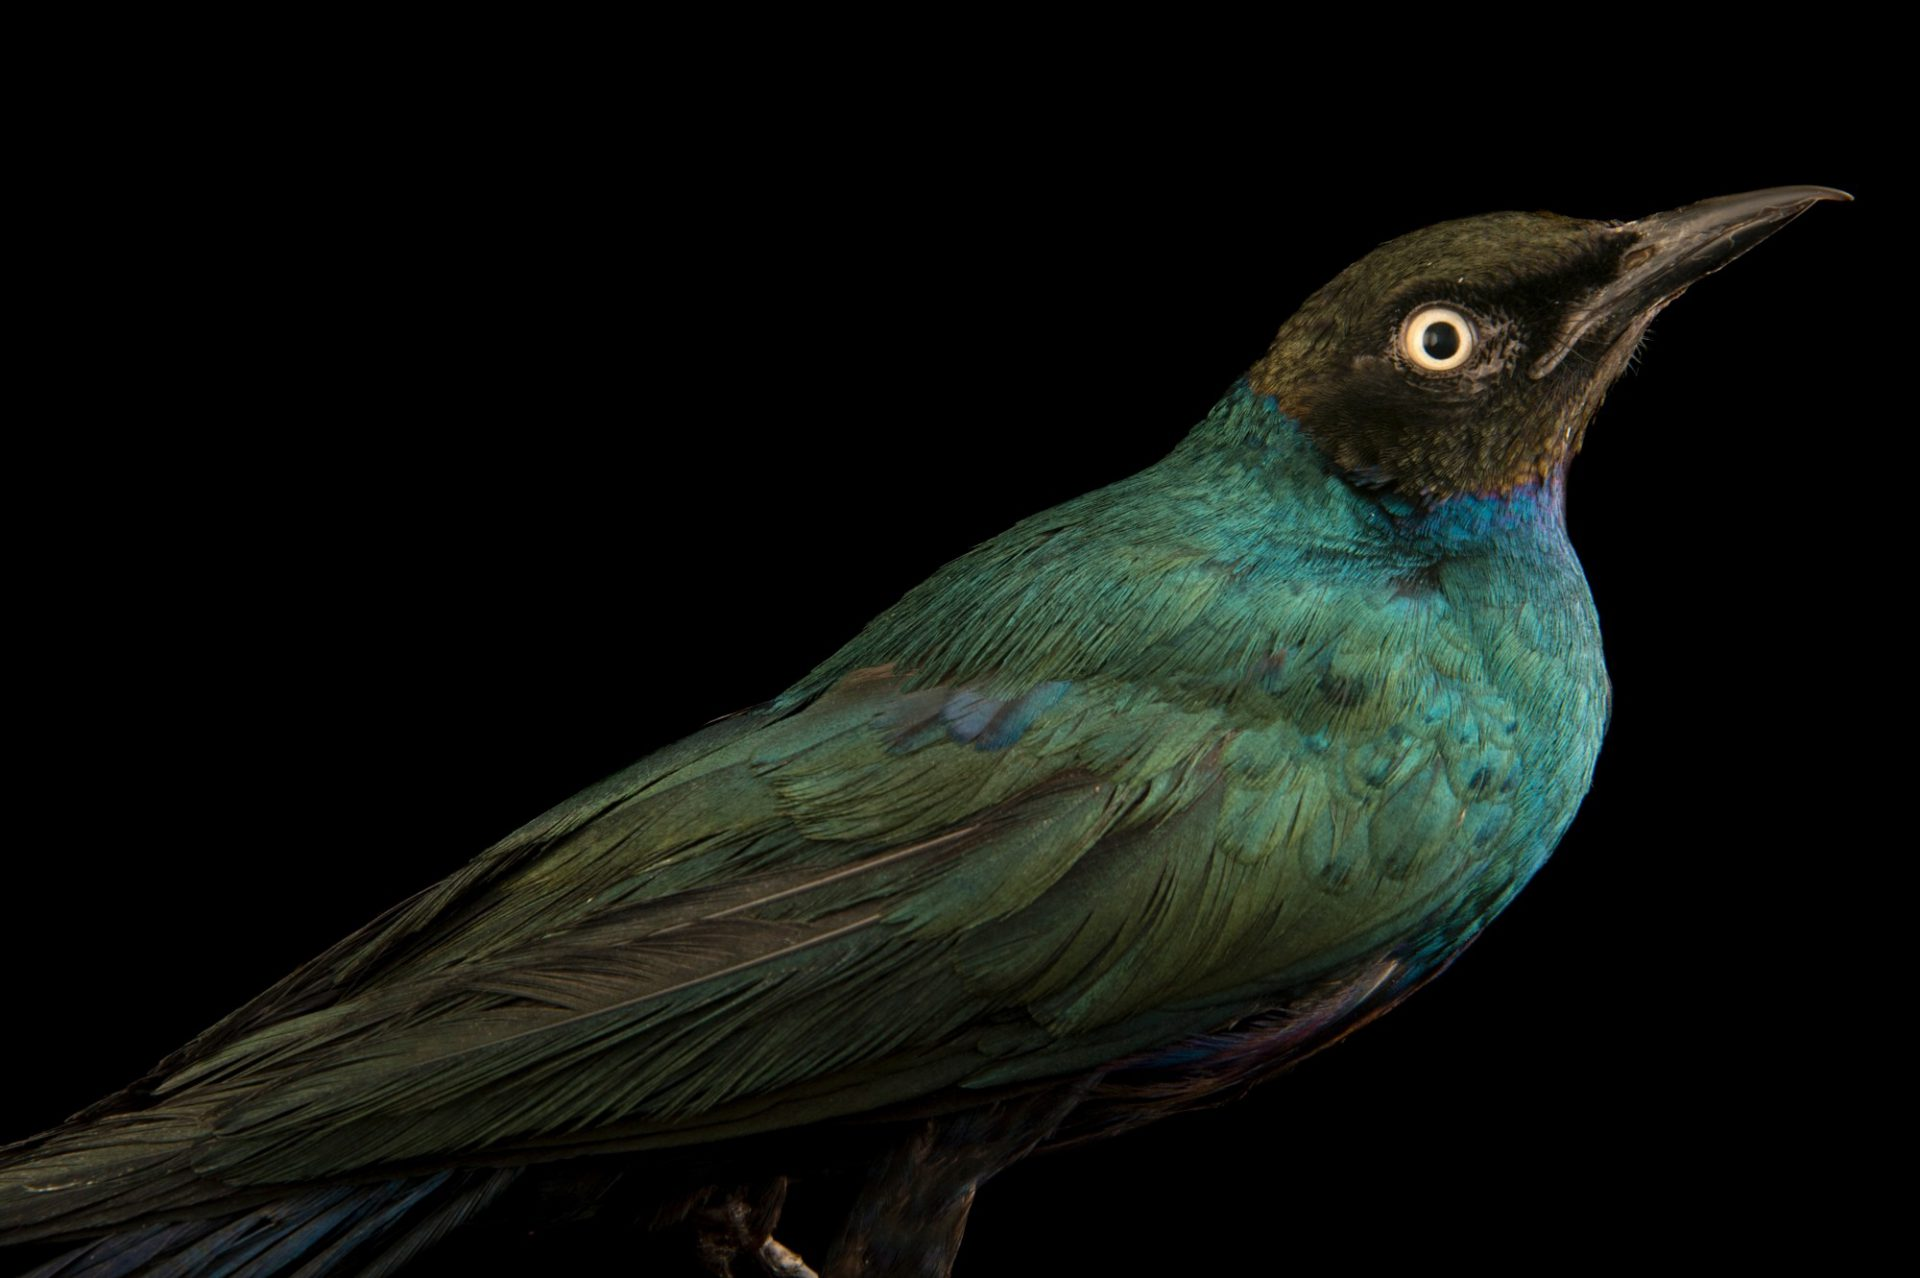 Photo: A long-tailed glossy starling (Lamprotornis caudatus) from a private collection in Choussy, France.